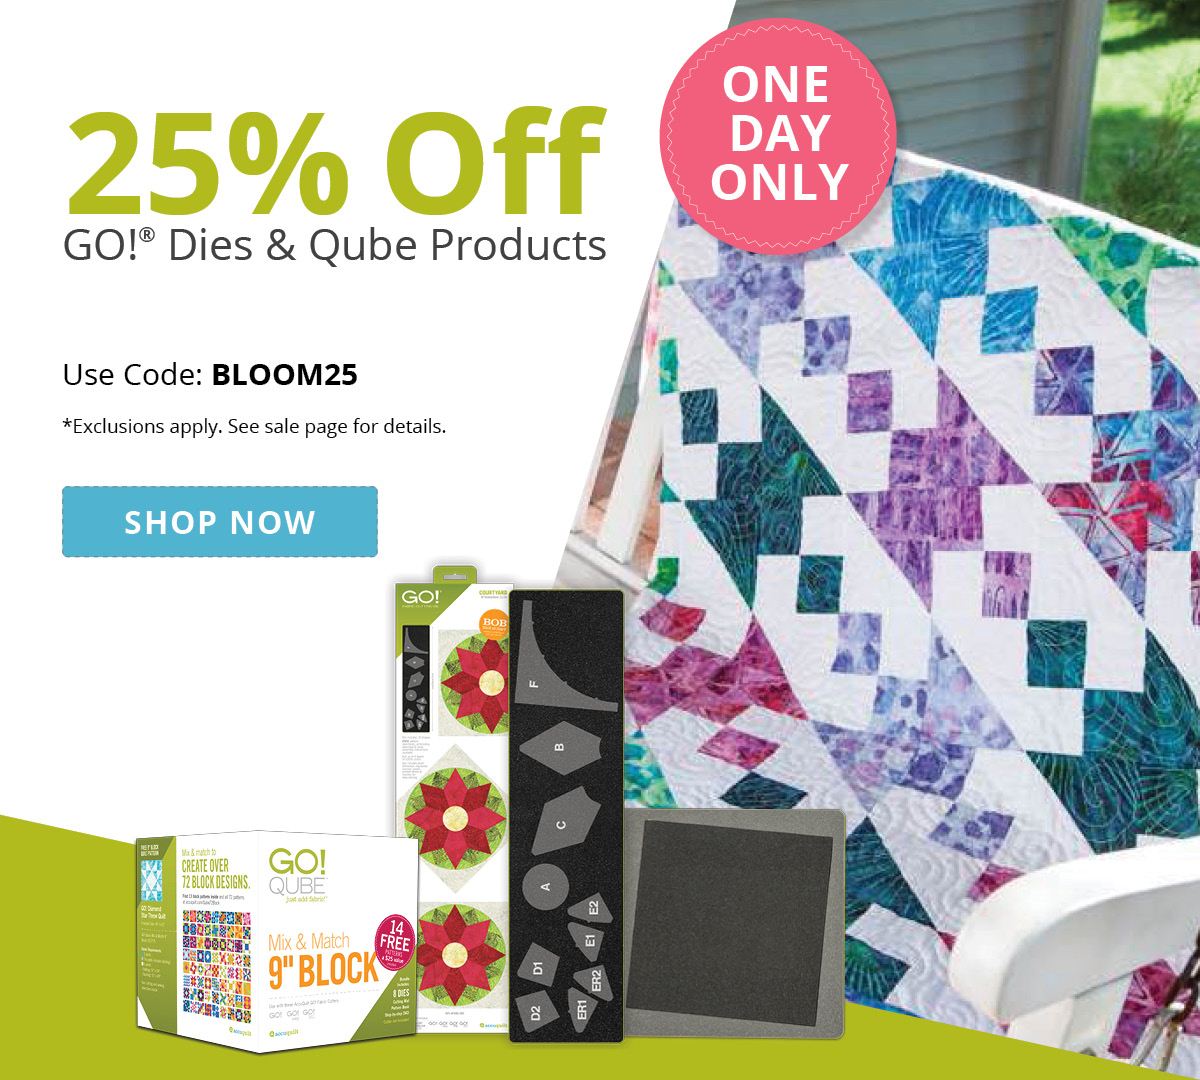 TODAY ONLY   Take 25% Off GO! Dies & Qube Products >